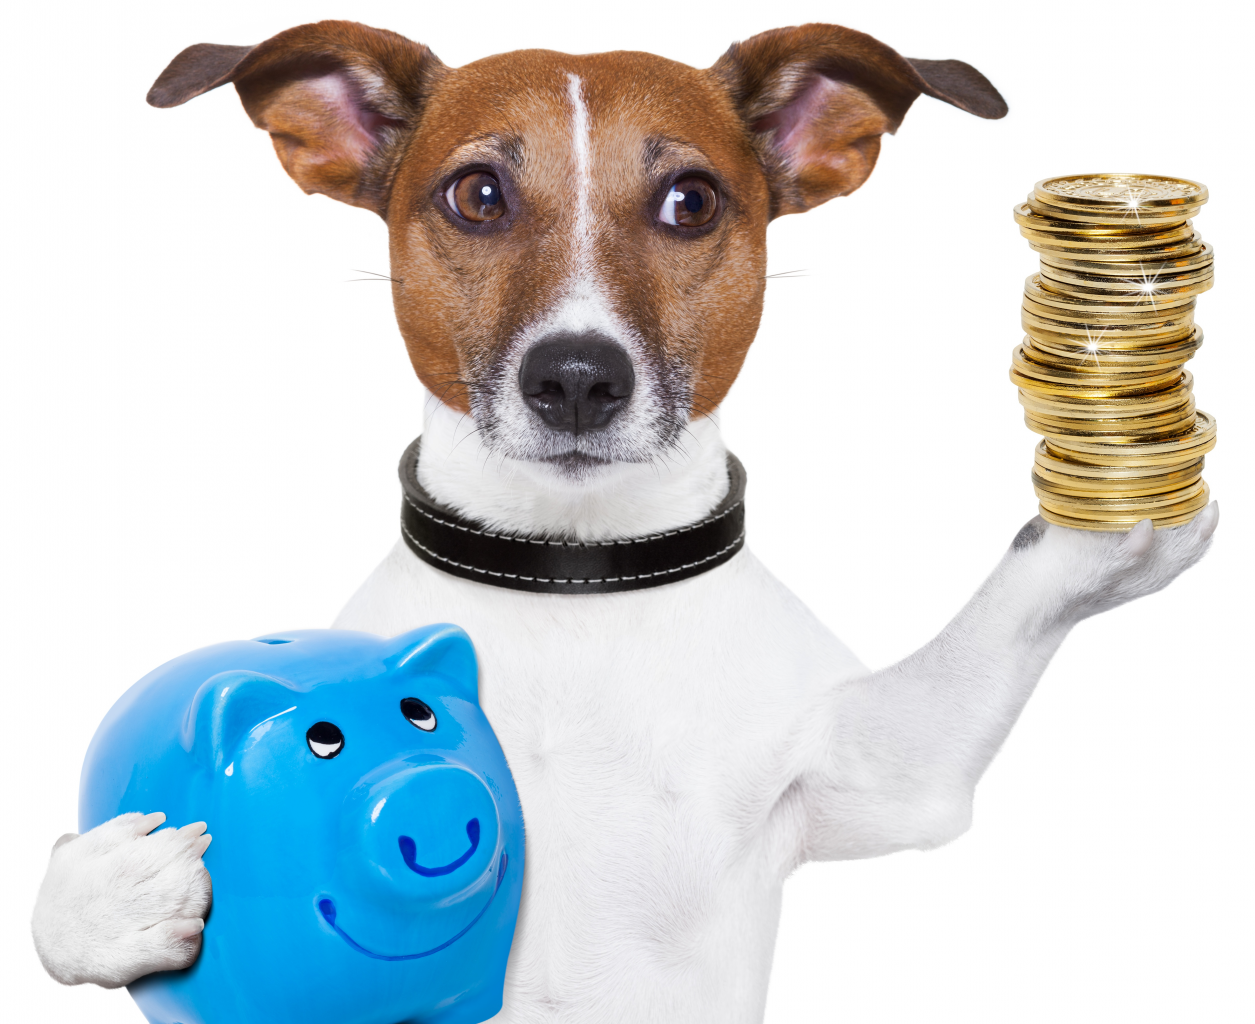 How to own a dog on a budget